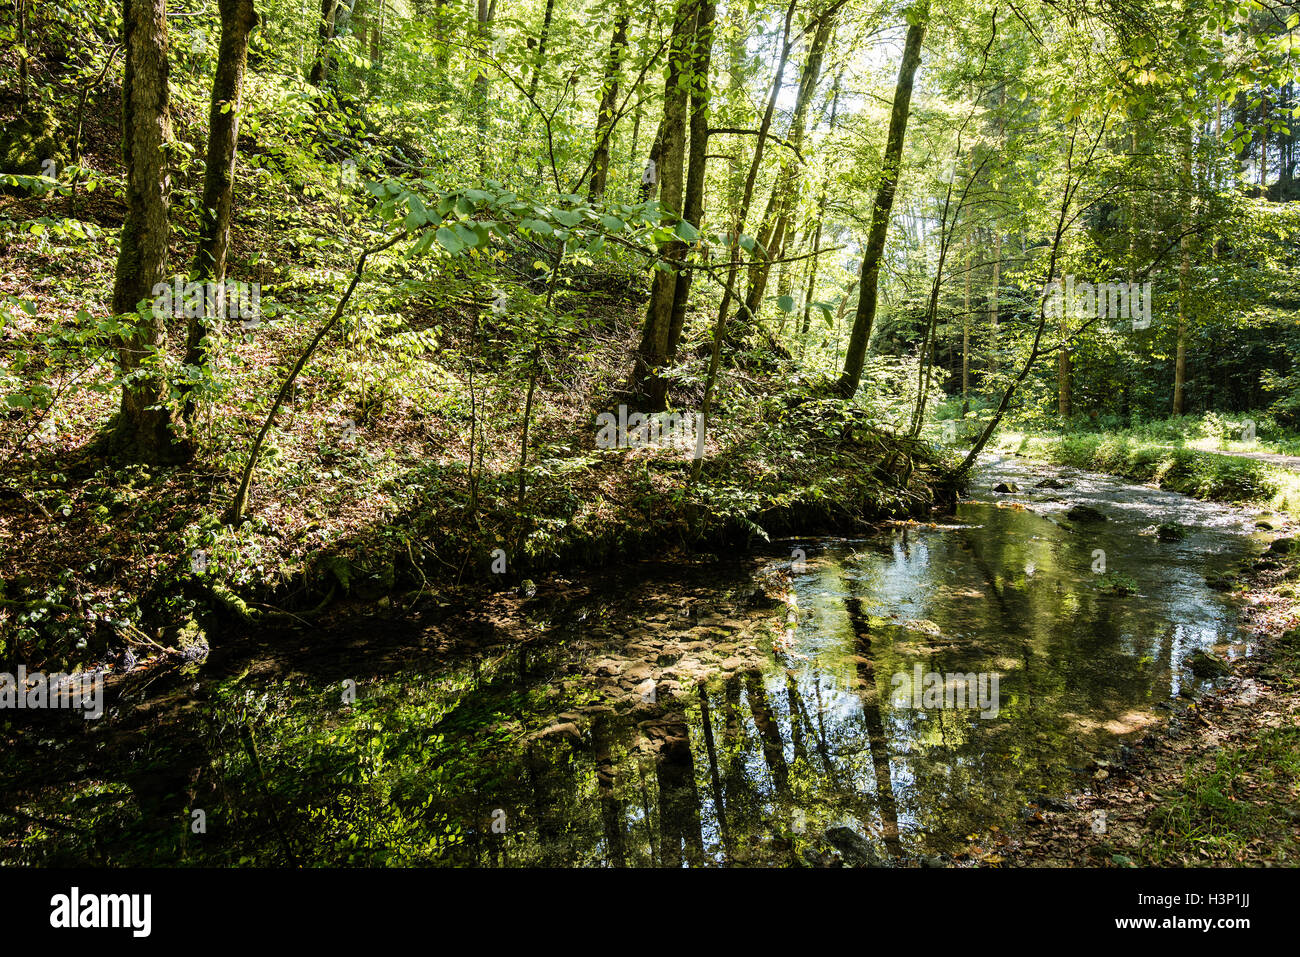 Beautiful landscape in Swabian Alb - Stock Image